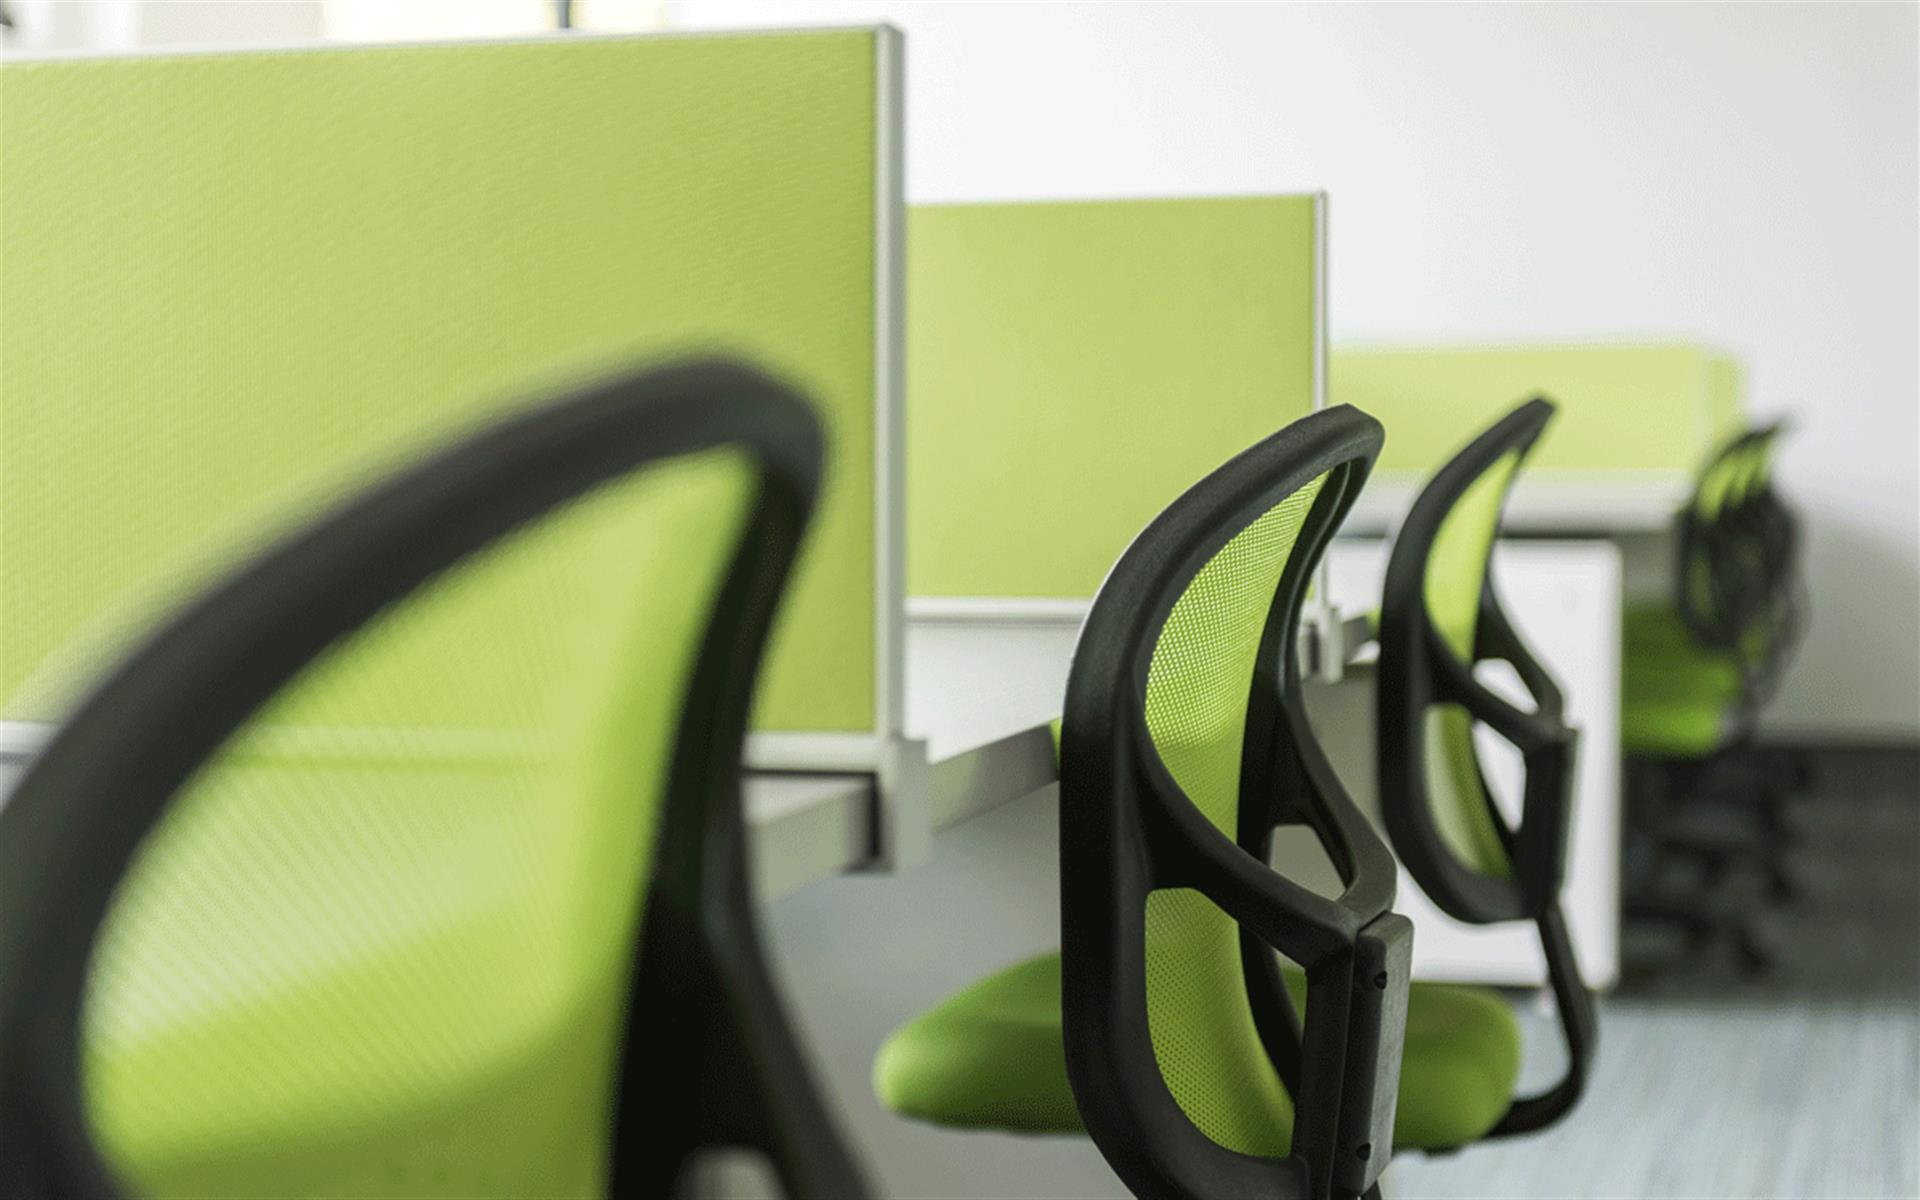 COMRADITY Strategy & Creative Resource Center - Coworking Desk for a month